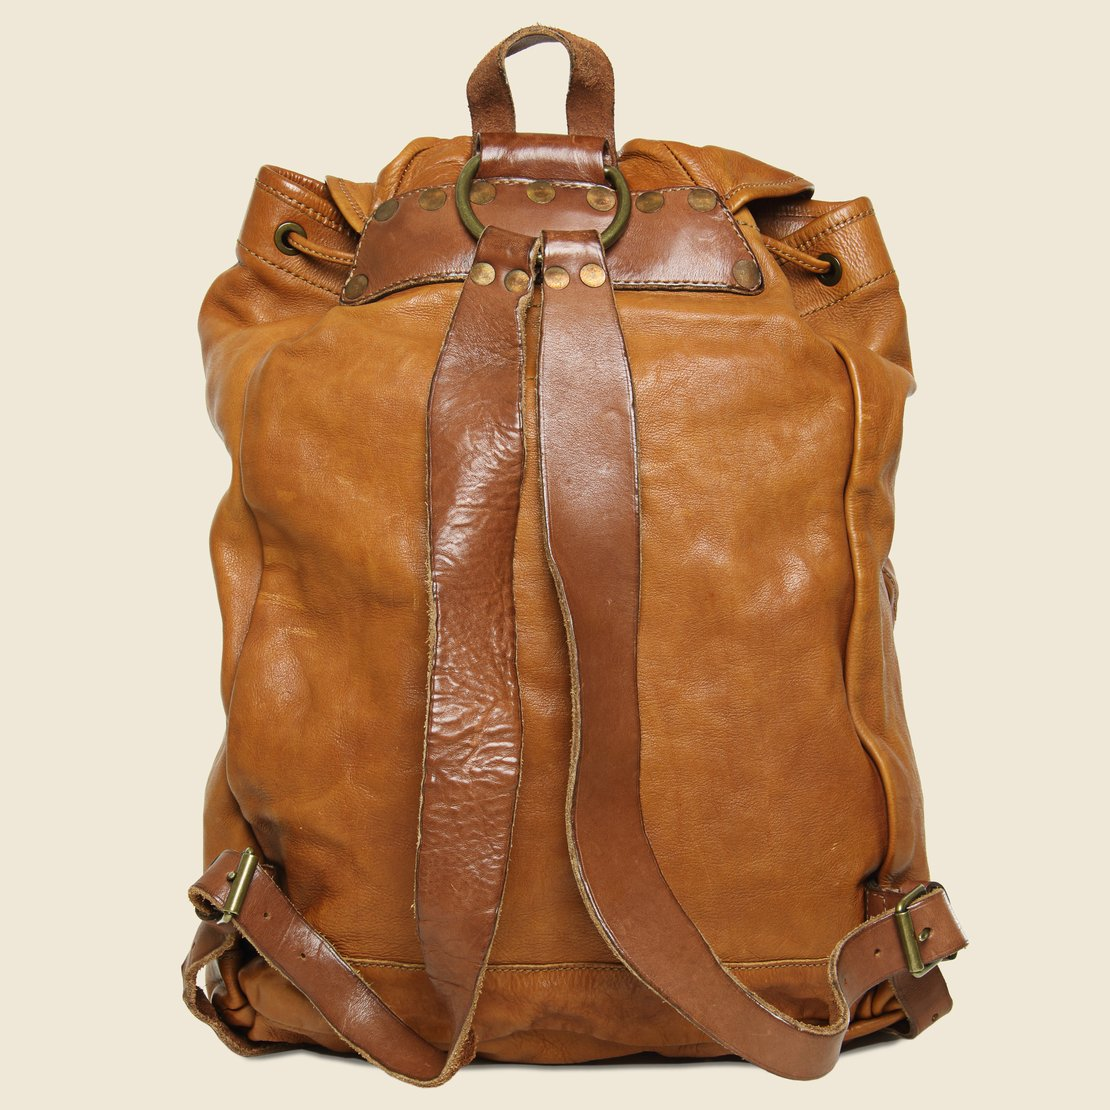 Riley Leather Rucksack - Tan